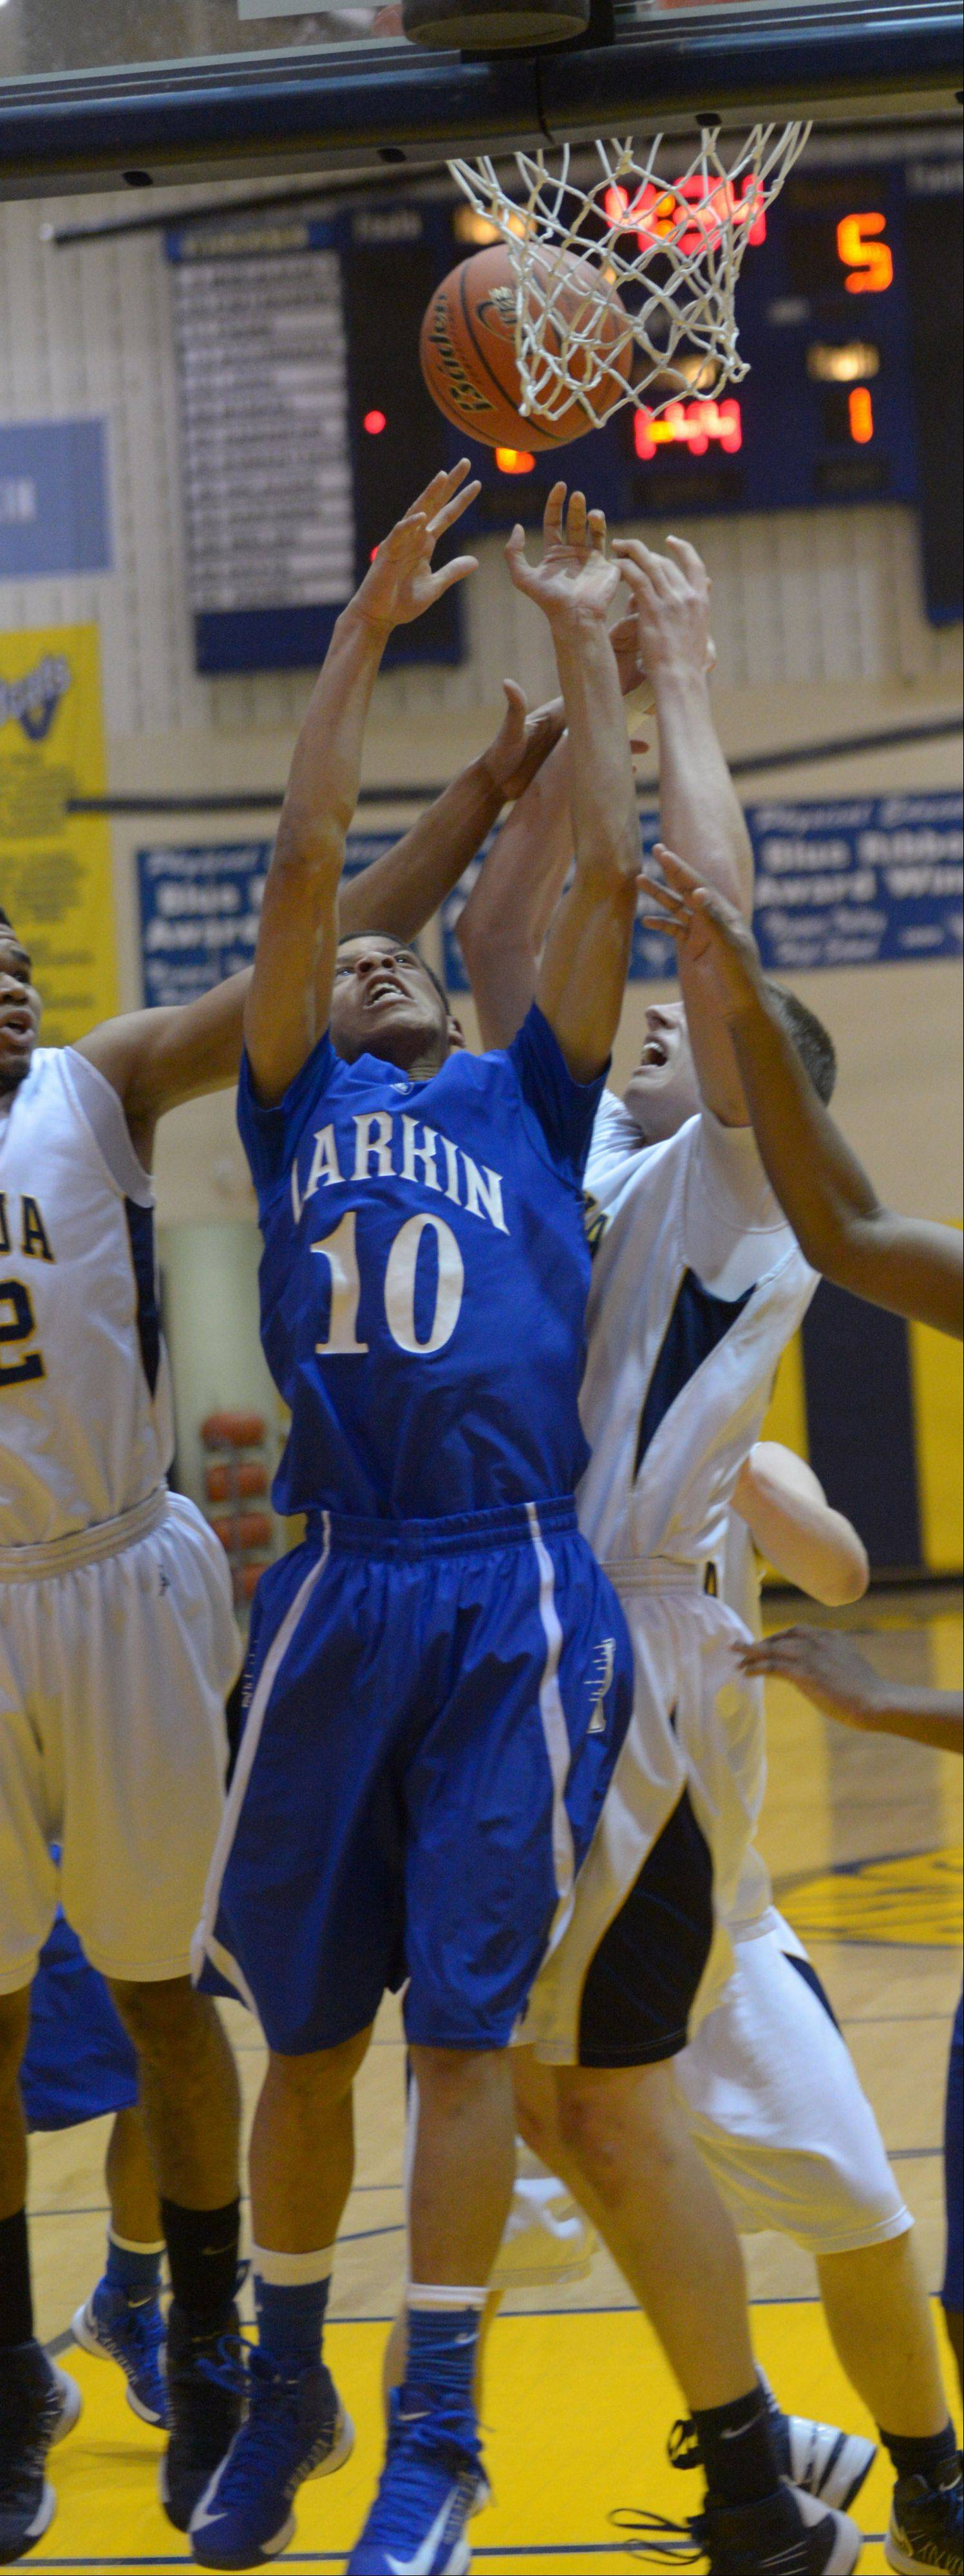 Kendale McCullum of Larkin goes up for a rebound Friday night at Neuqua Valley.